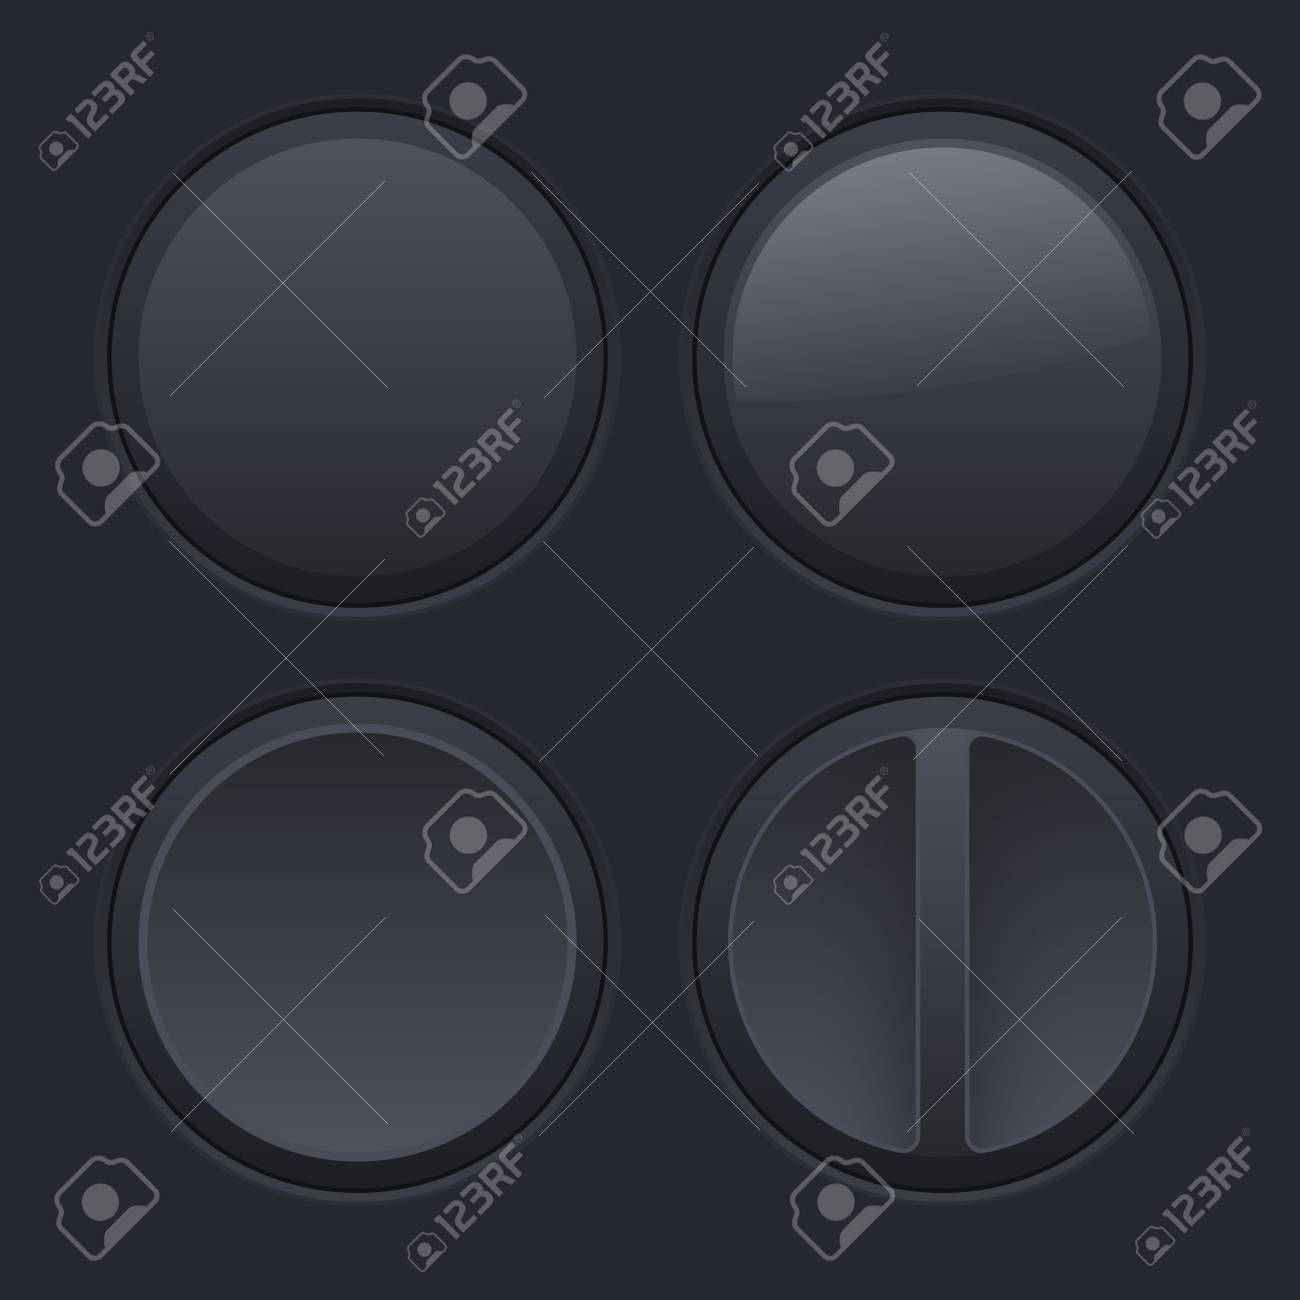 Round Black Plastic Buttons On Matted Background Vector 1300x1300